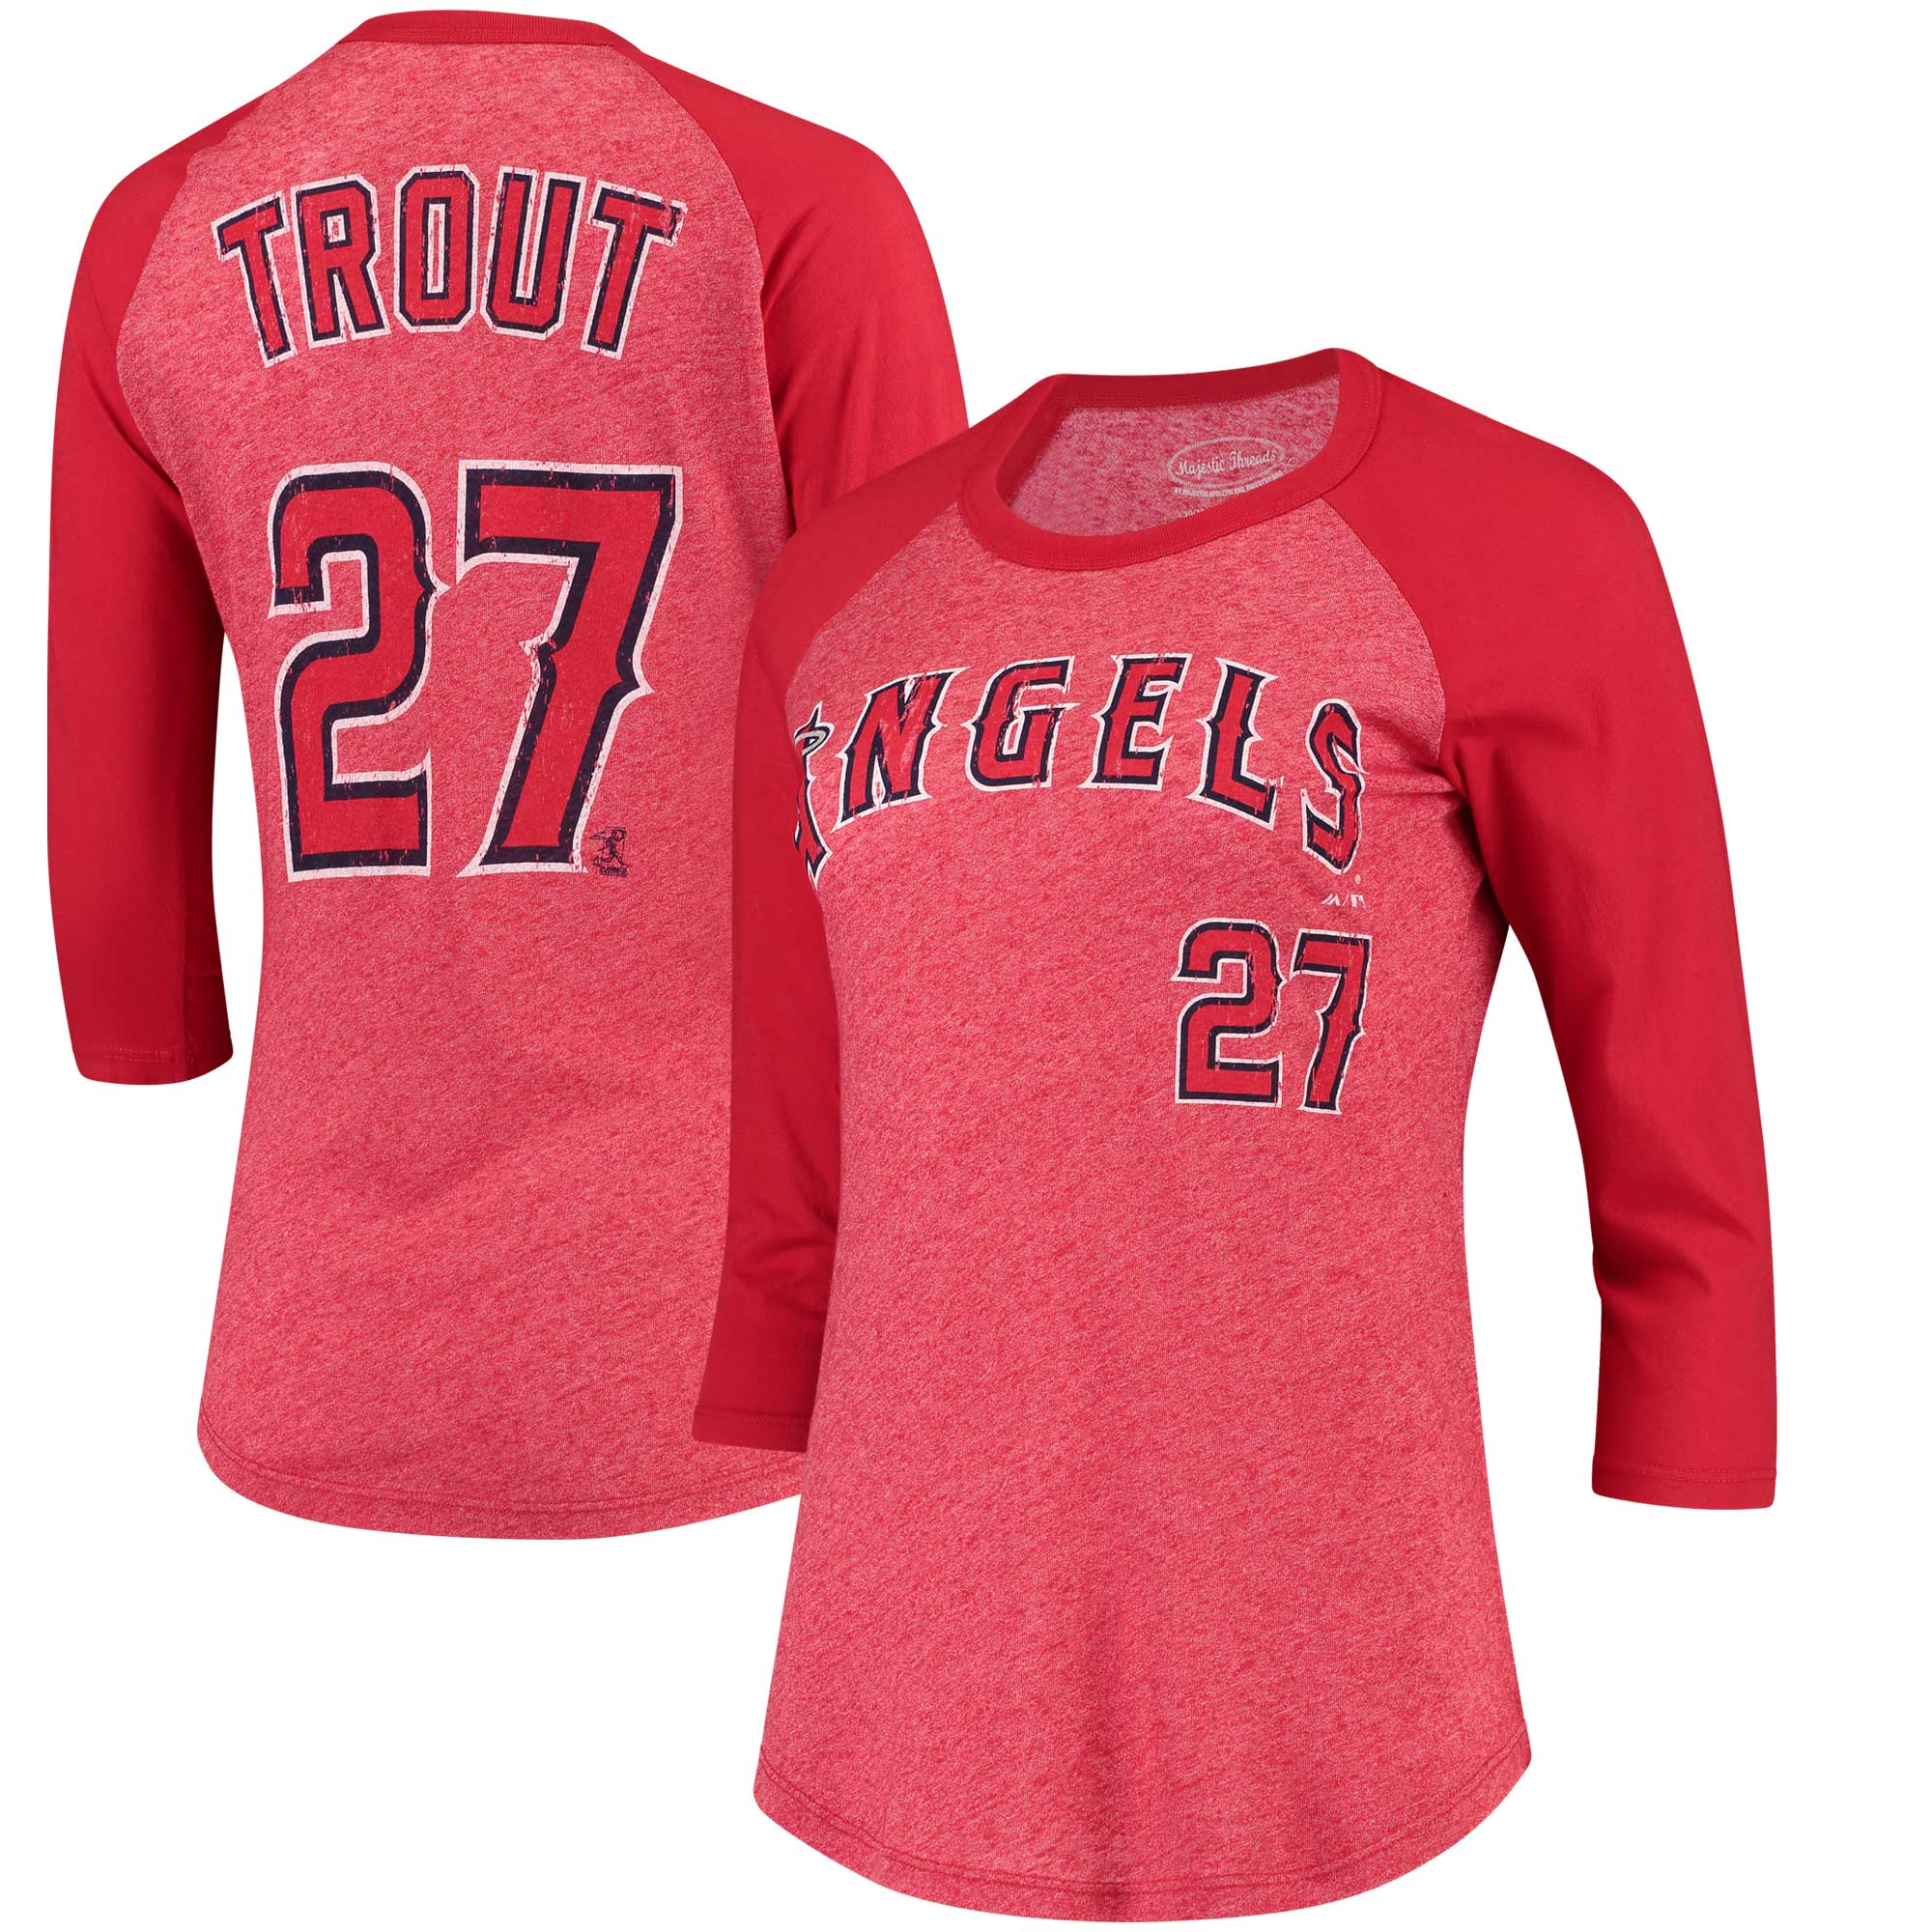 Mike Trout Los Angeles Angels Majestic Threads Women's Name & Number Tri-Blend Three-Quarter Length Raglan T-Shirt - Red